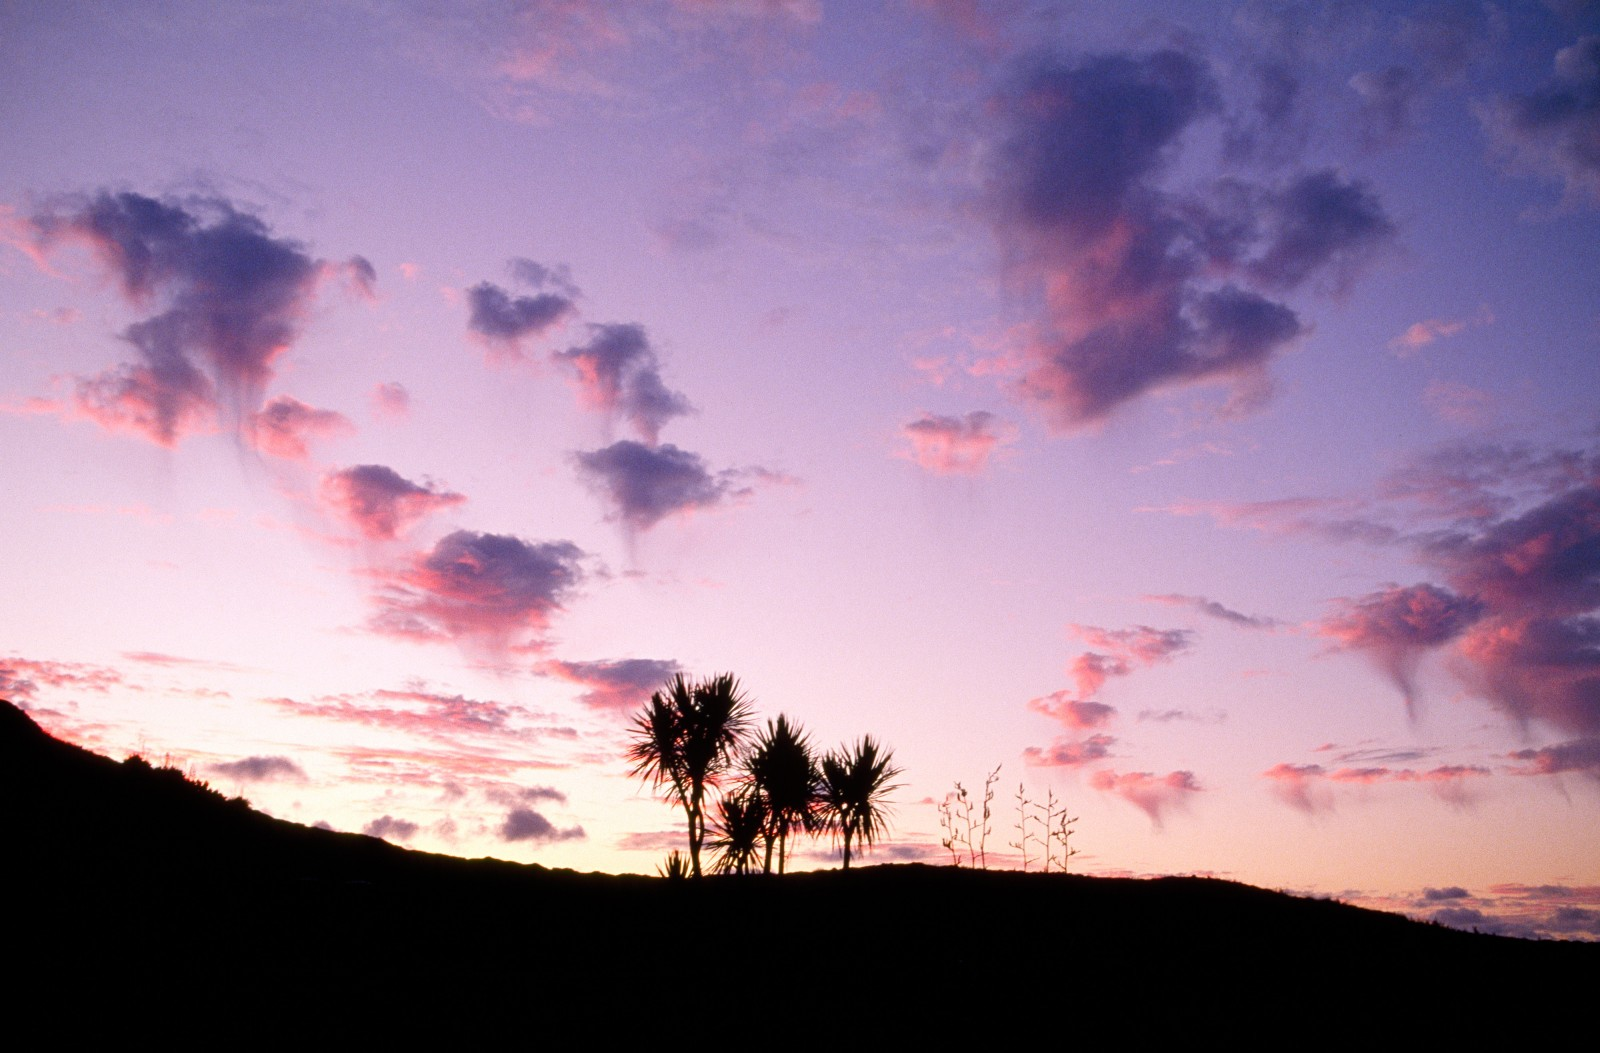 Cabbage trees and flax flowers silhouetted on the hillside above Spirit Bay at sunset.